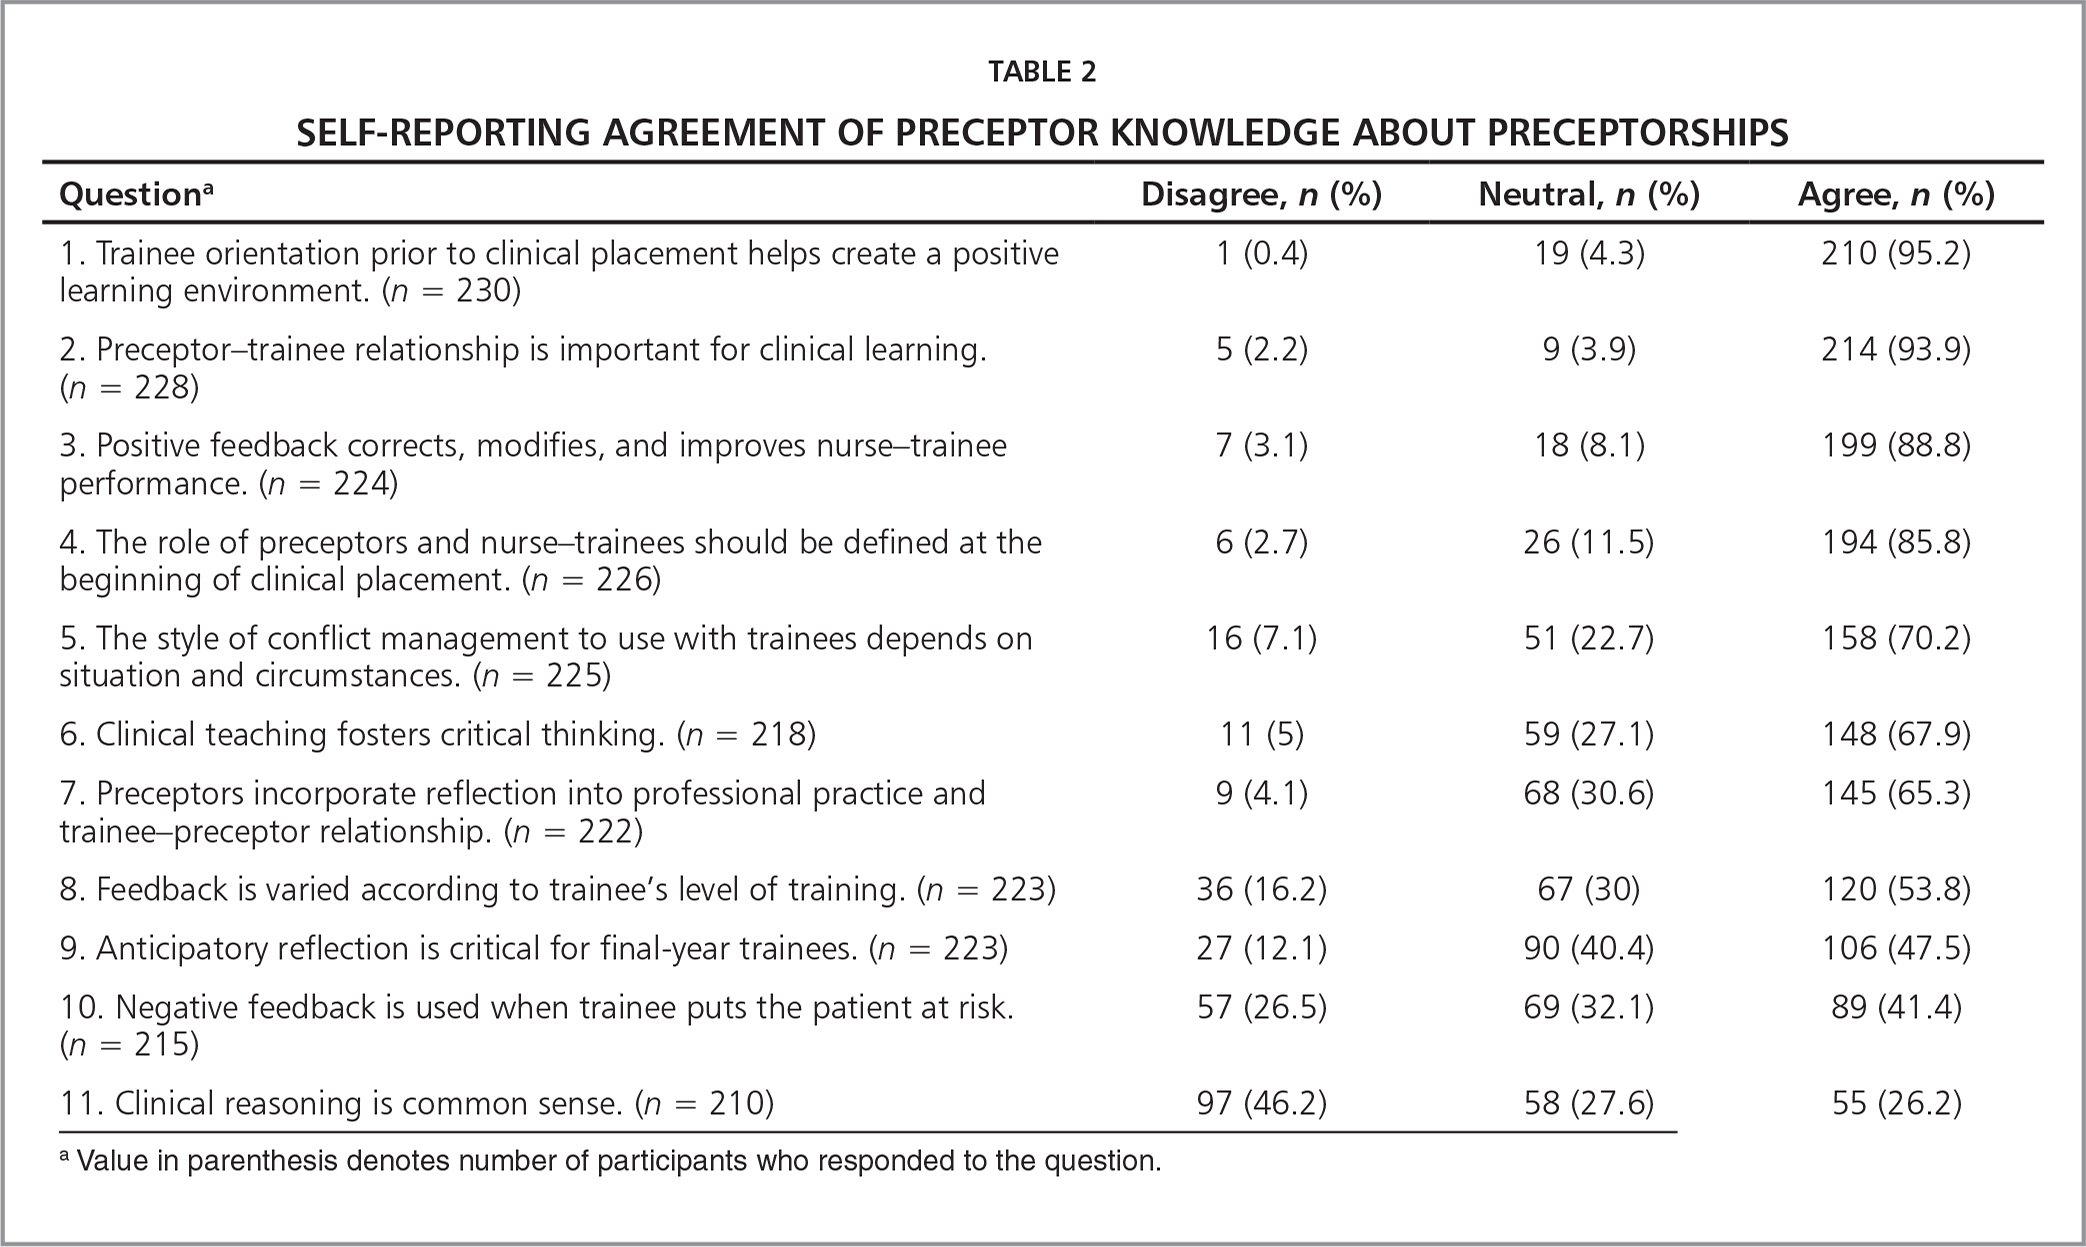 Self-Reporting Agreement of Preceptor Knowledge About Preceptorships